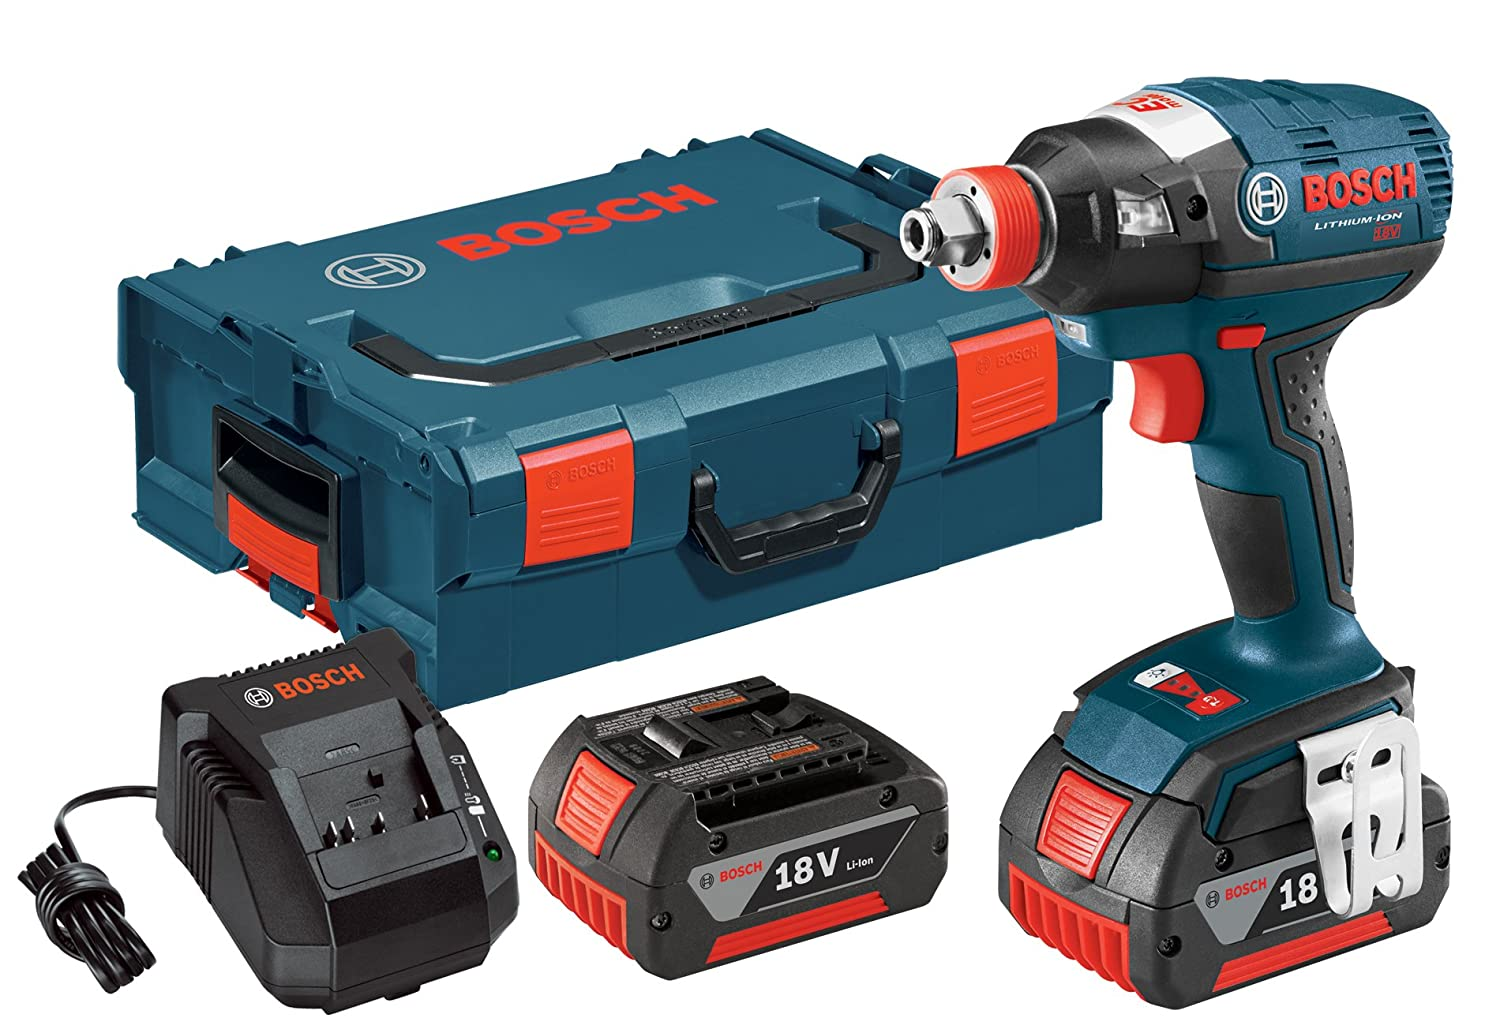 The Best Impact Driver 3